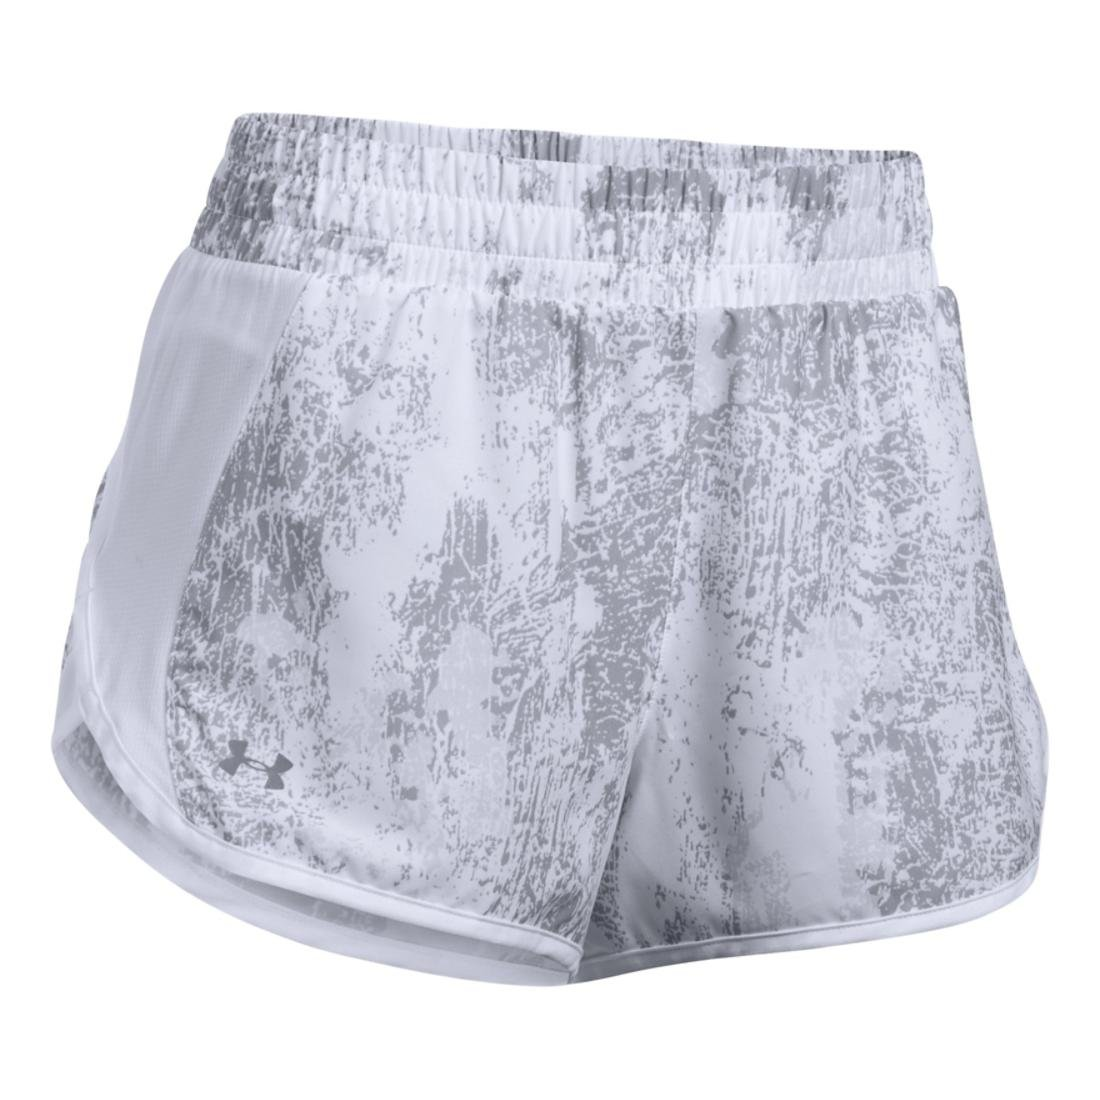 f74614e10 Large Under Armour Apparel 1303009 100 /Reflective Under Armour Womens  Launch Printed Tulip Shorts,White